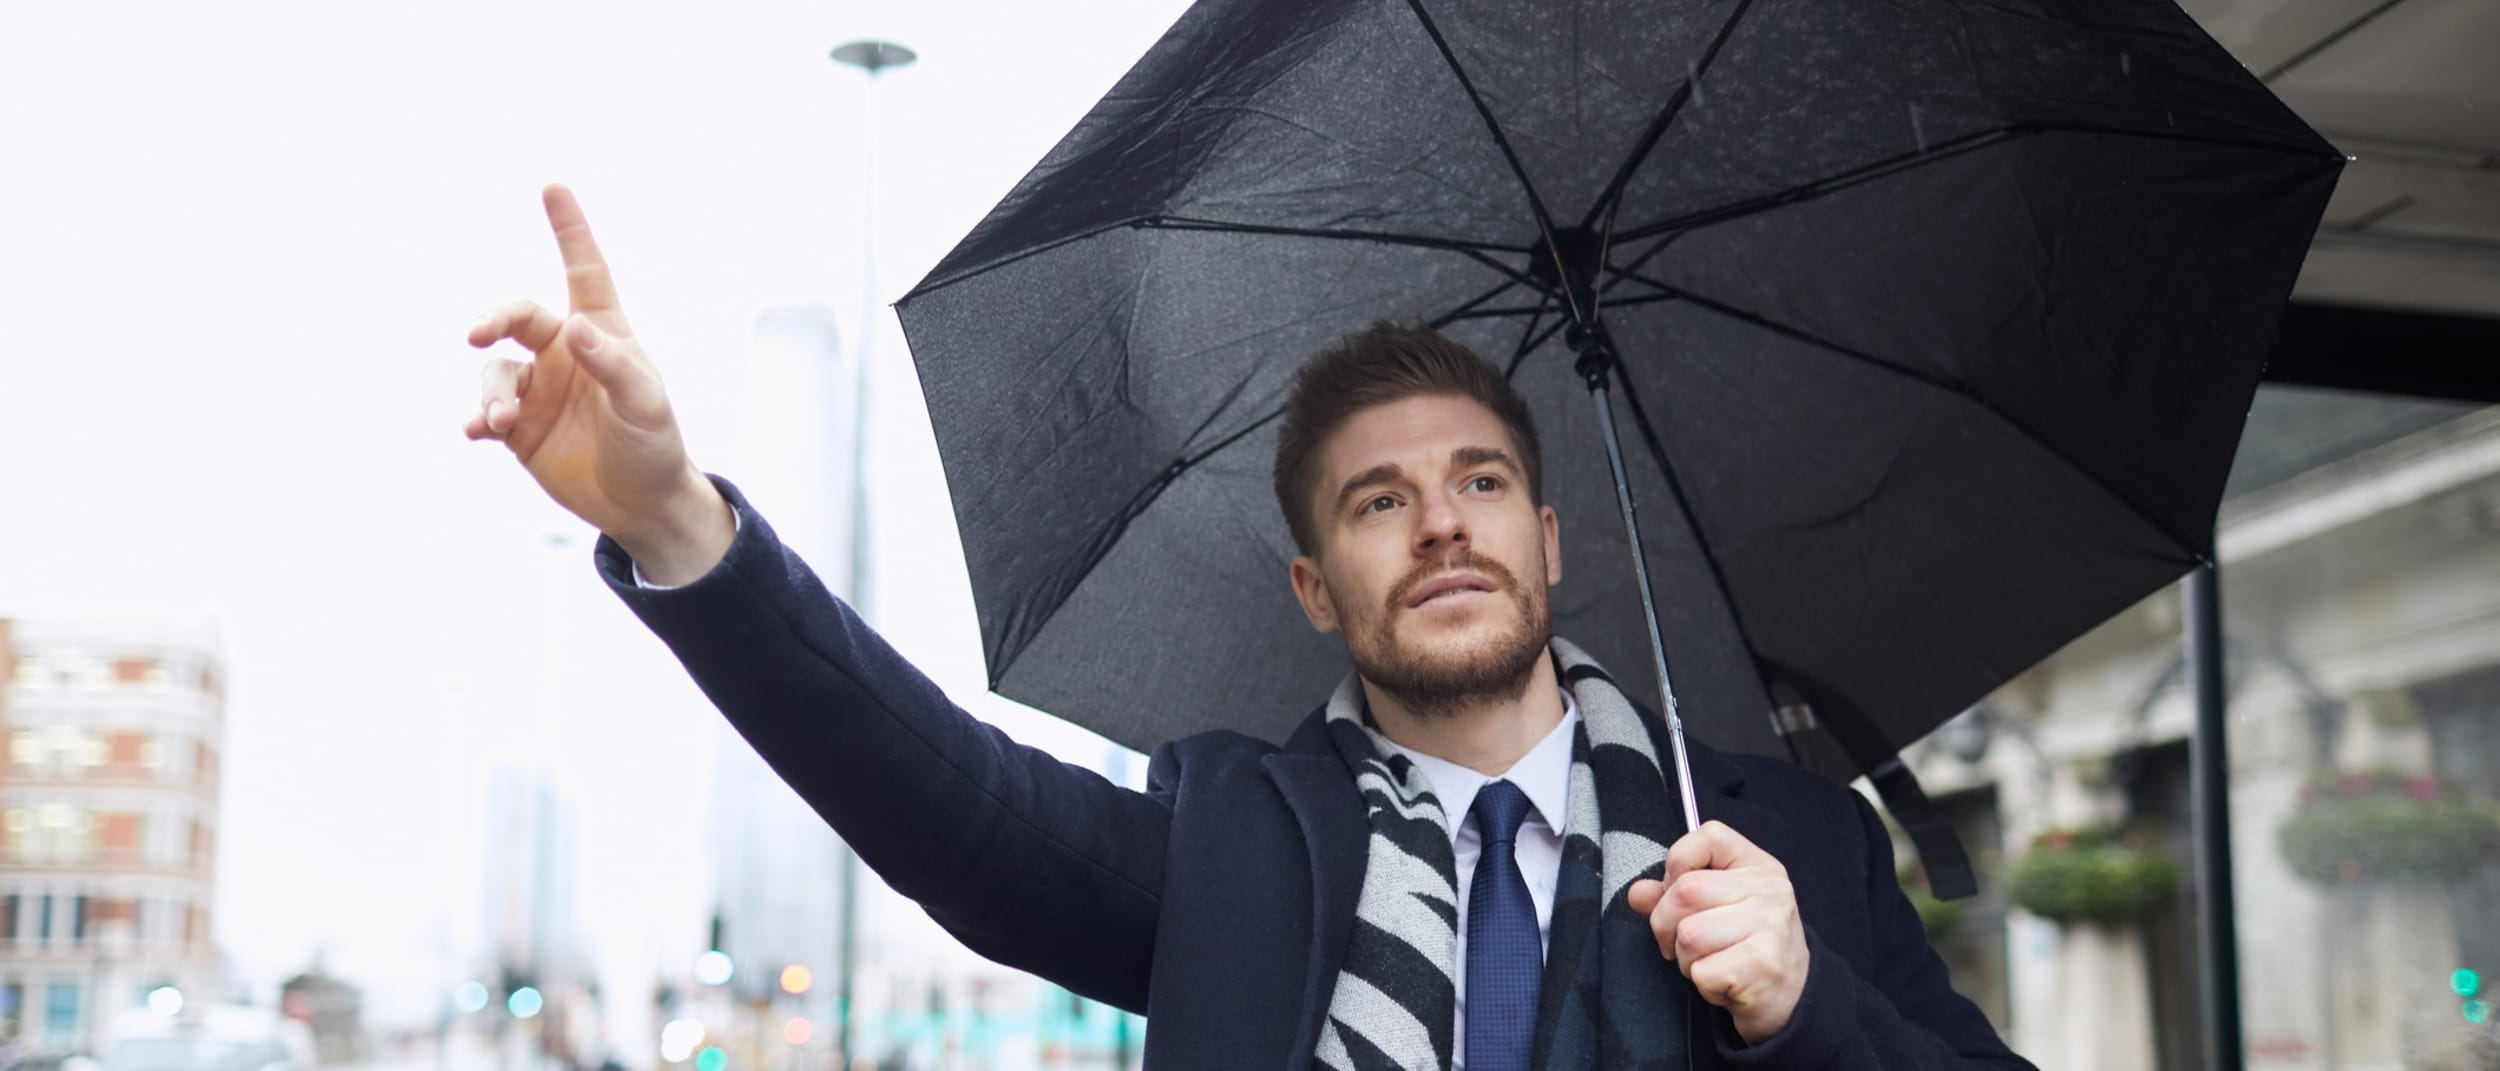 Rain or sleet: These 7 men's winter jackets have you covered